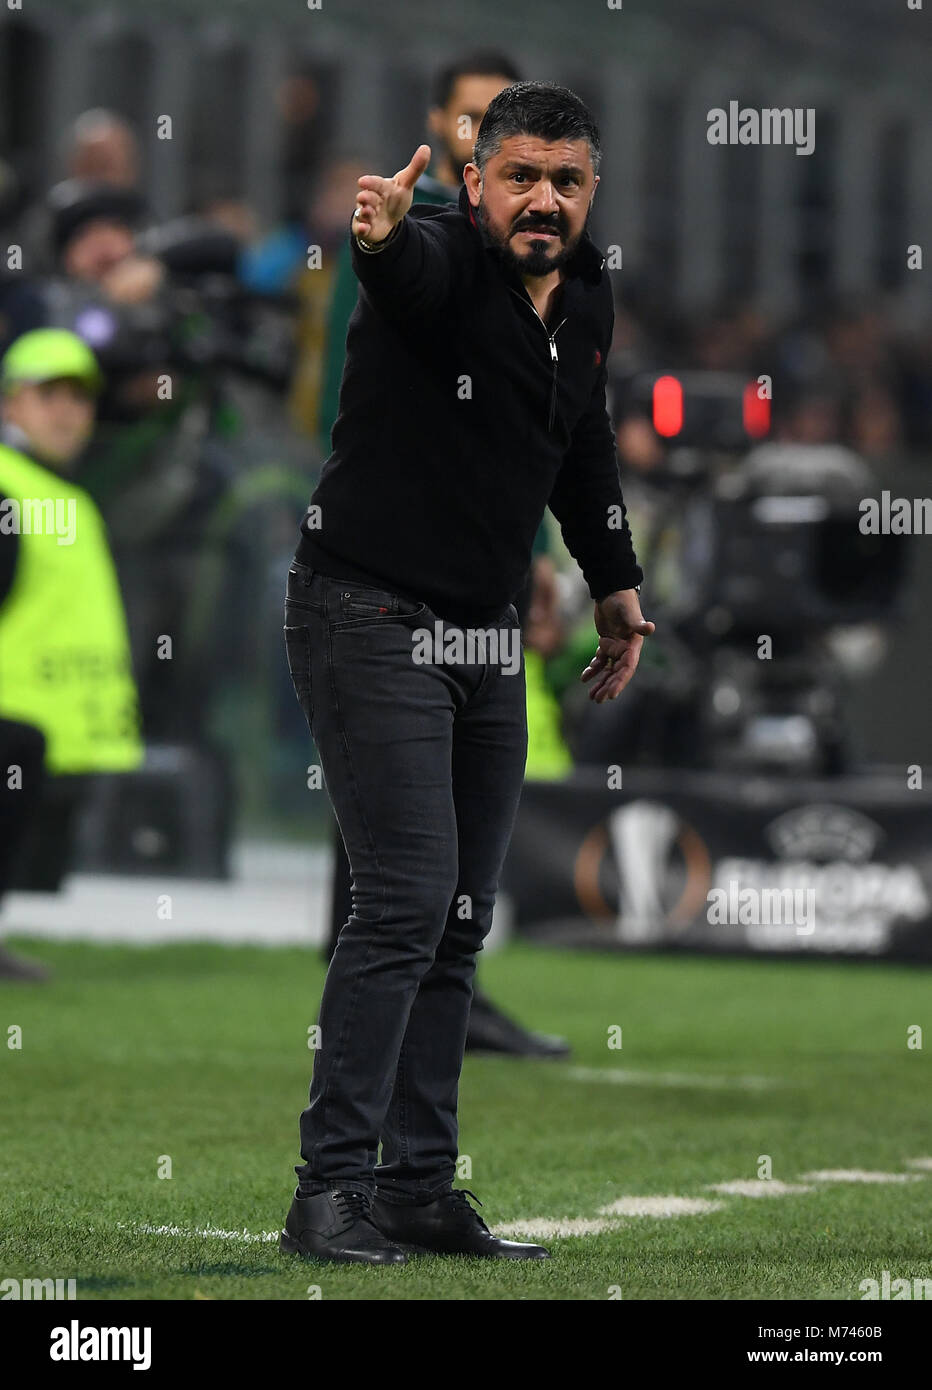 Milan, Italy. 8th Mar, 2018. AC Milan's coach Gennaro Gattuso gestures during a Europa League round of 16 first Stock Photo